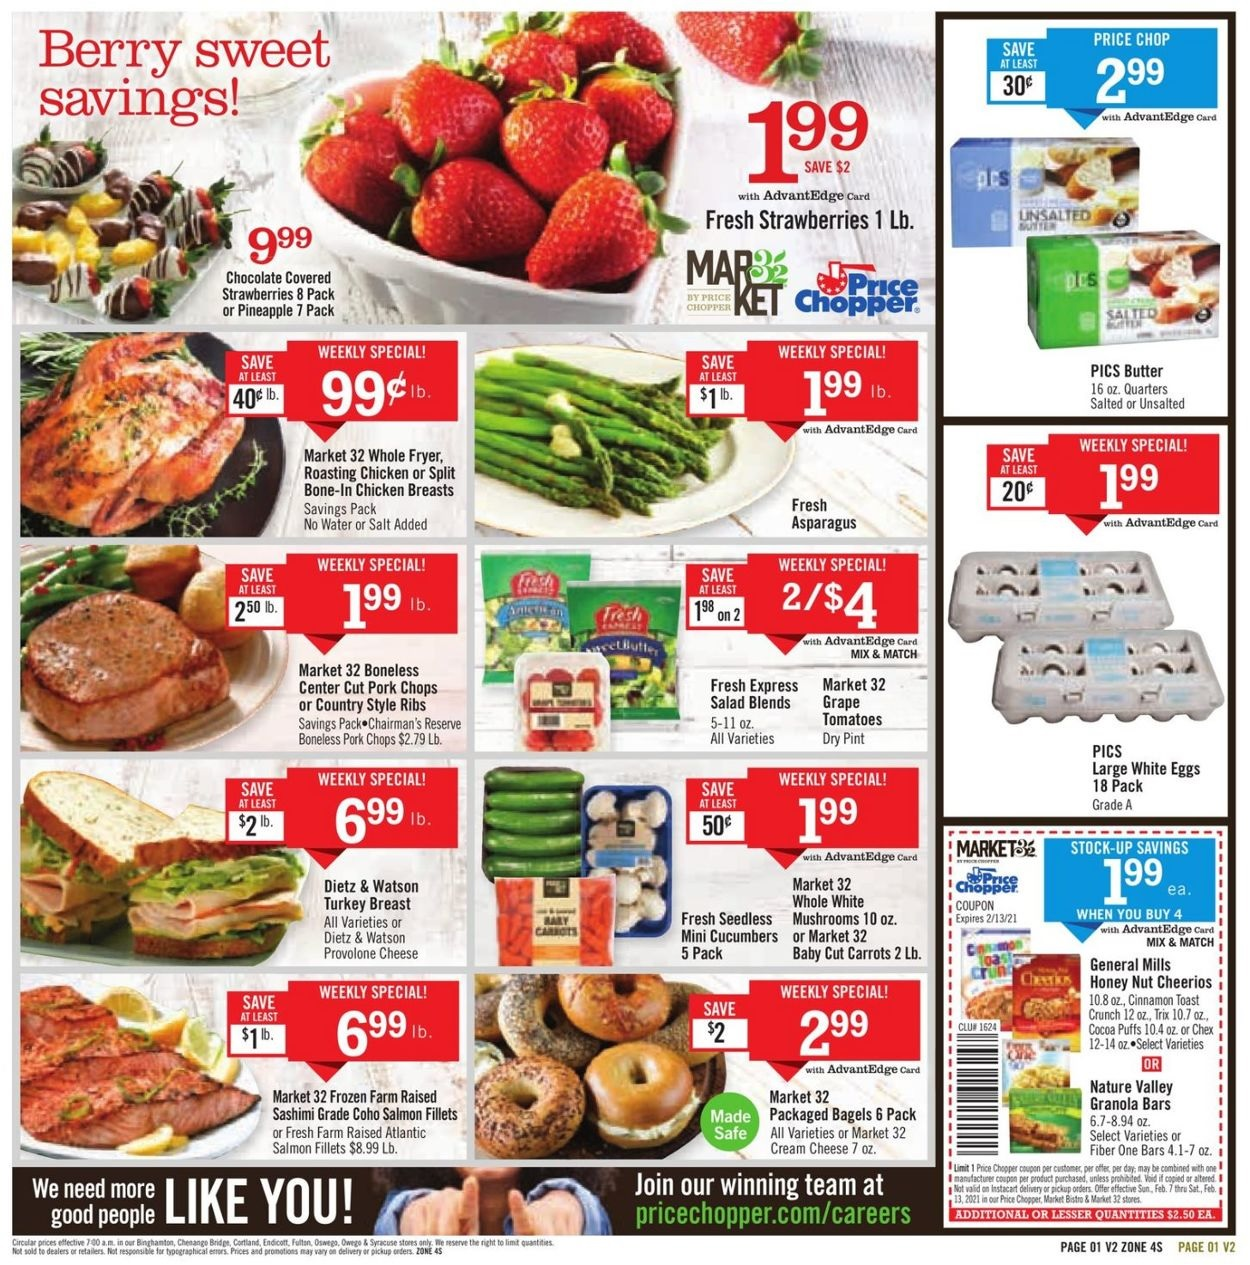 Price Chopper Weekly Flyer February 28 March 6 2021